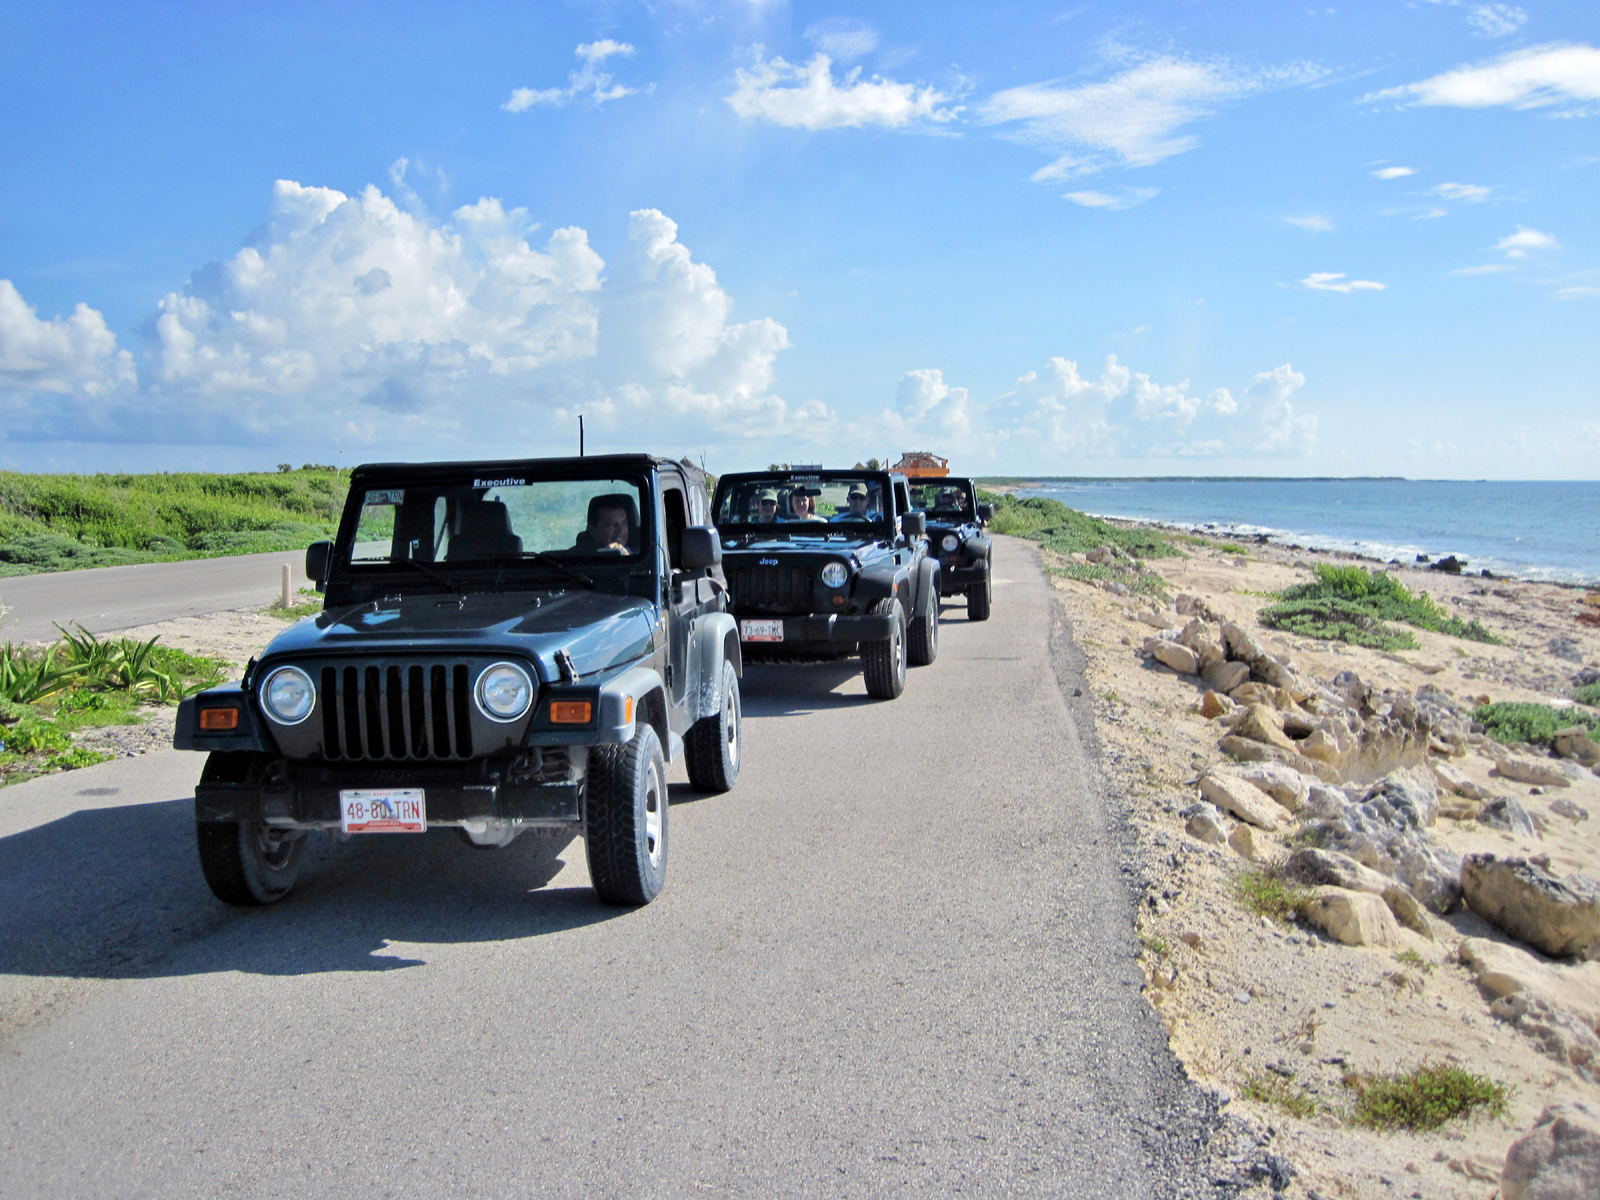 Cozumel Adventure by jeep